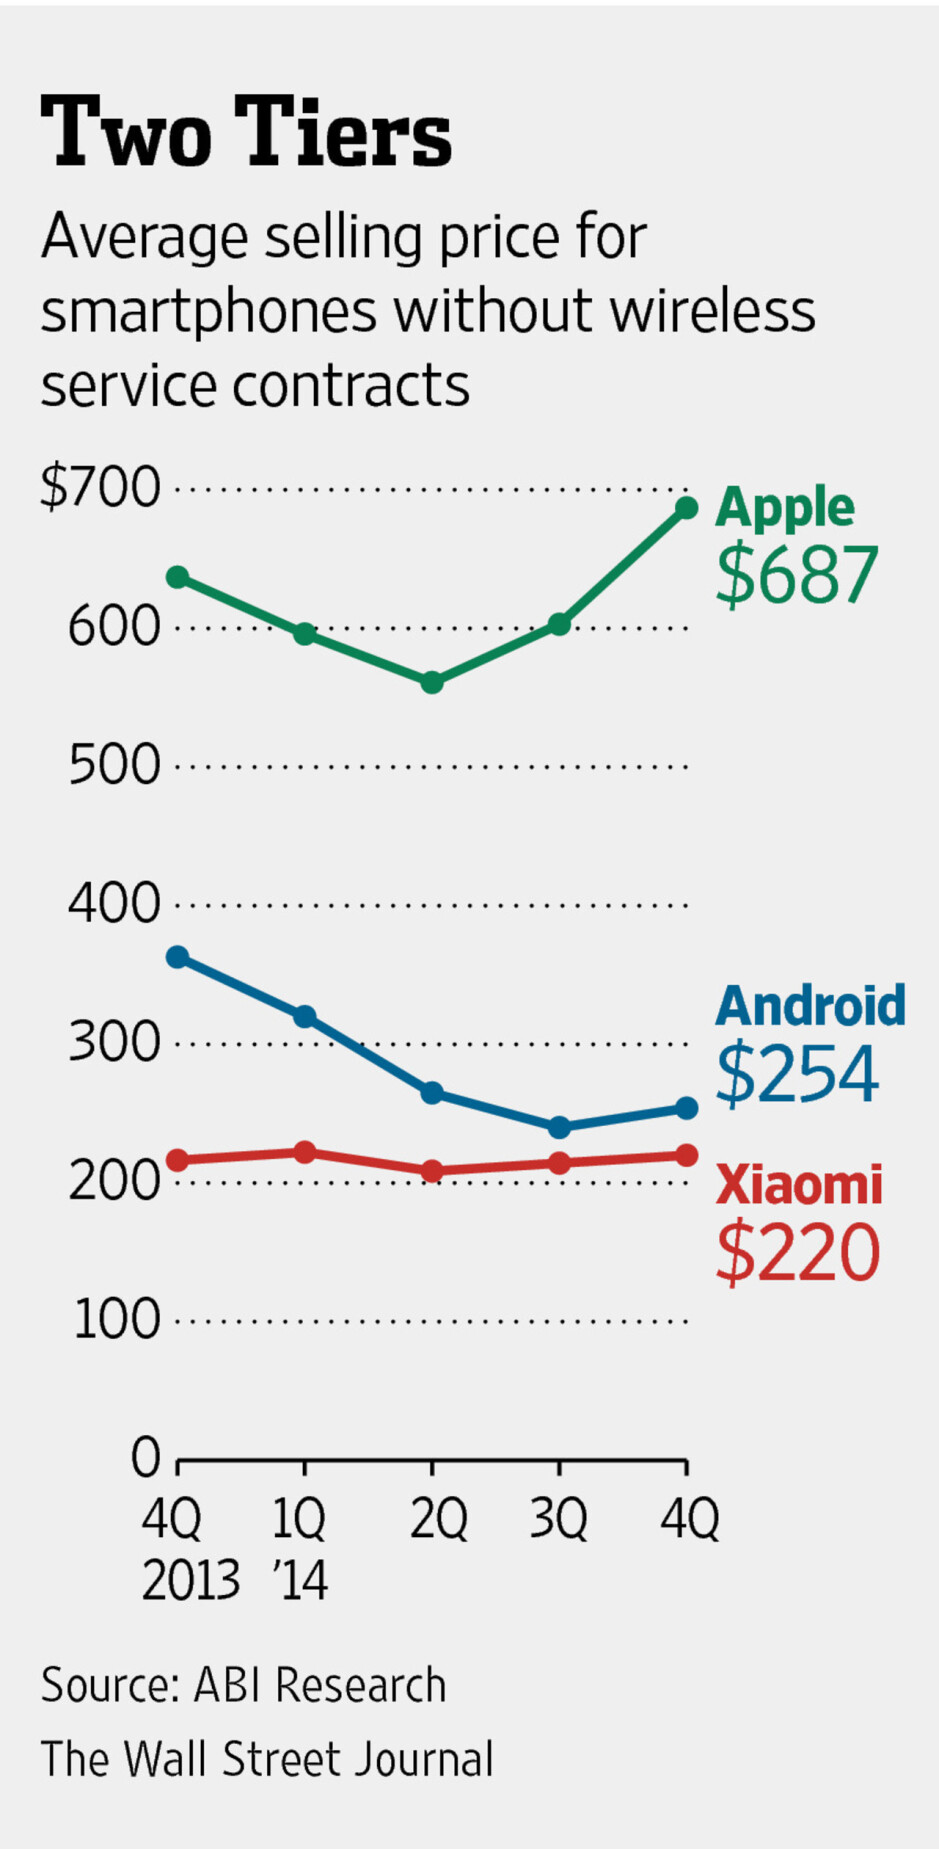 Apple widens the ASP gap: $687 for an iPhone, $254 for an Android